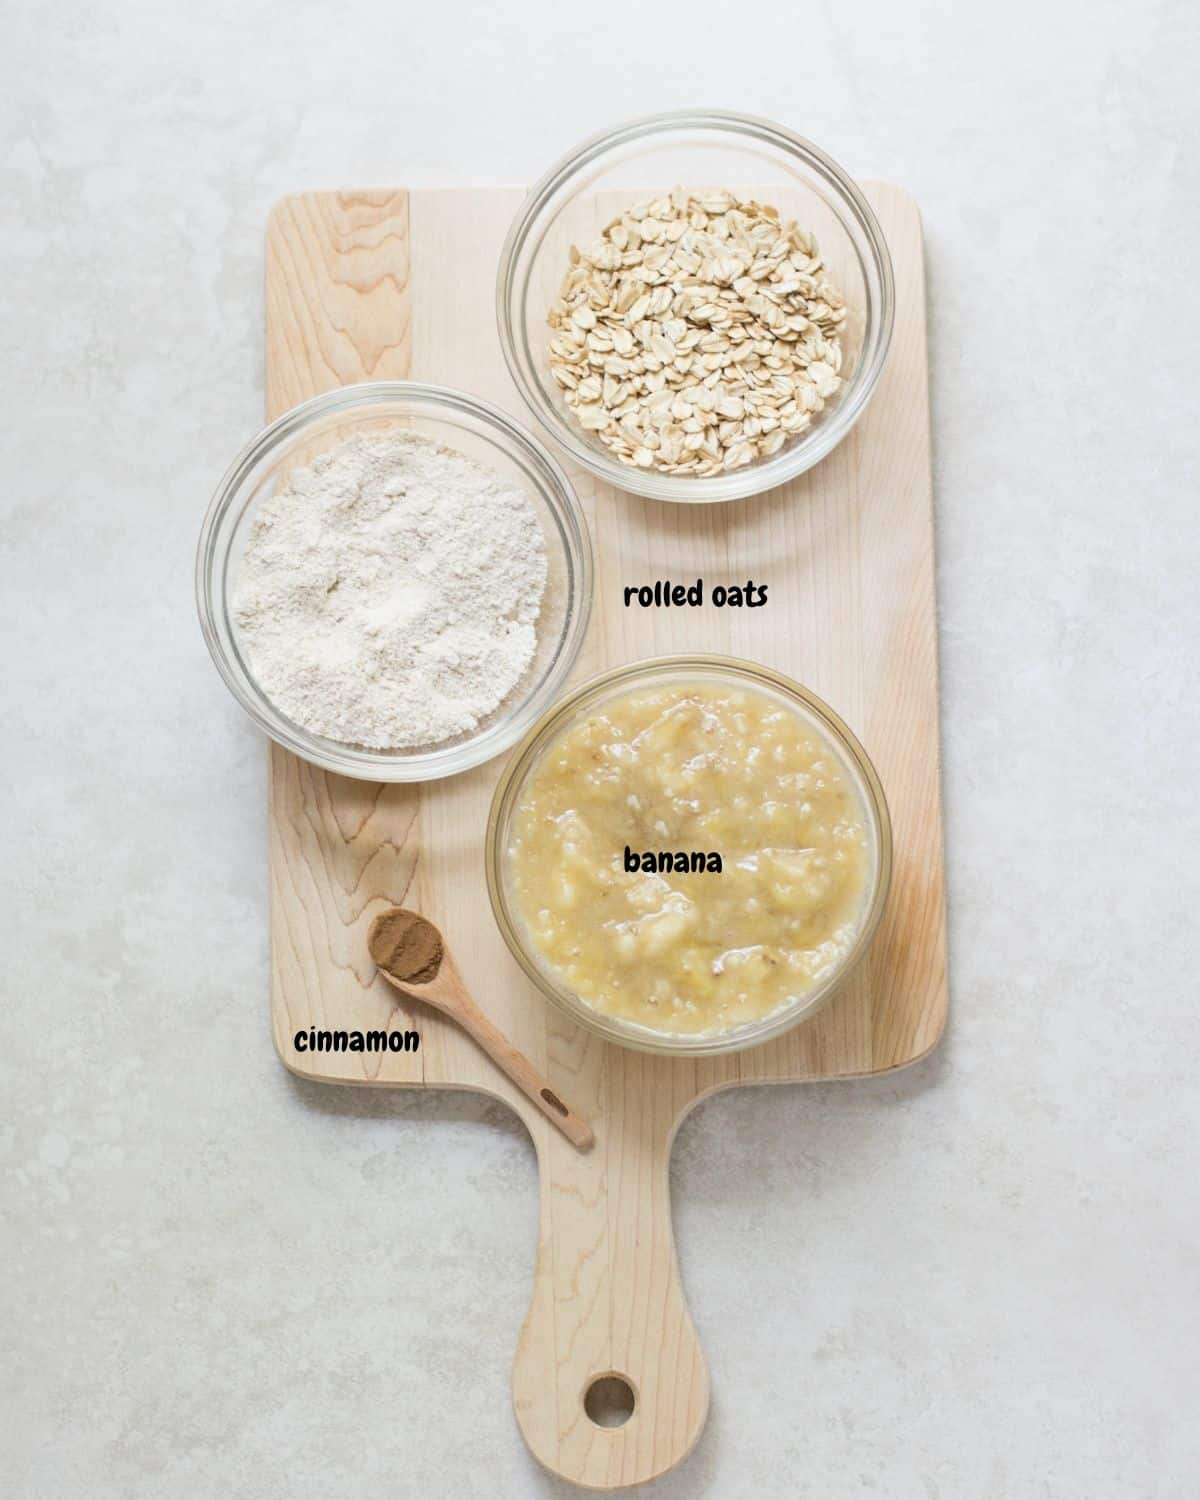 ingredients for the basic banana cookies on a wooden board